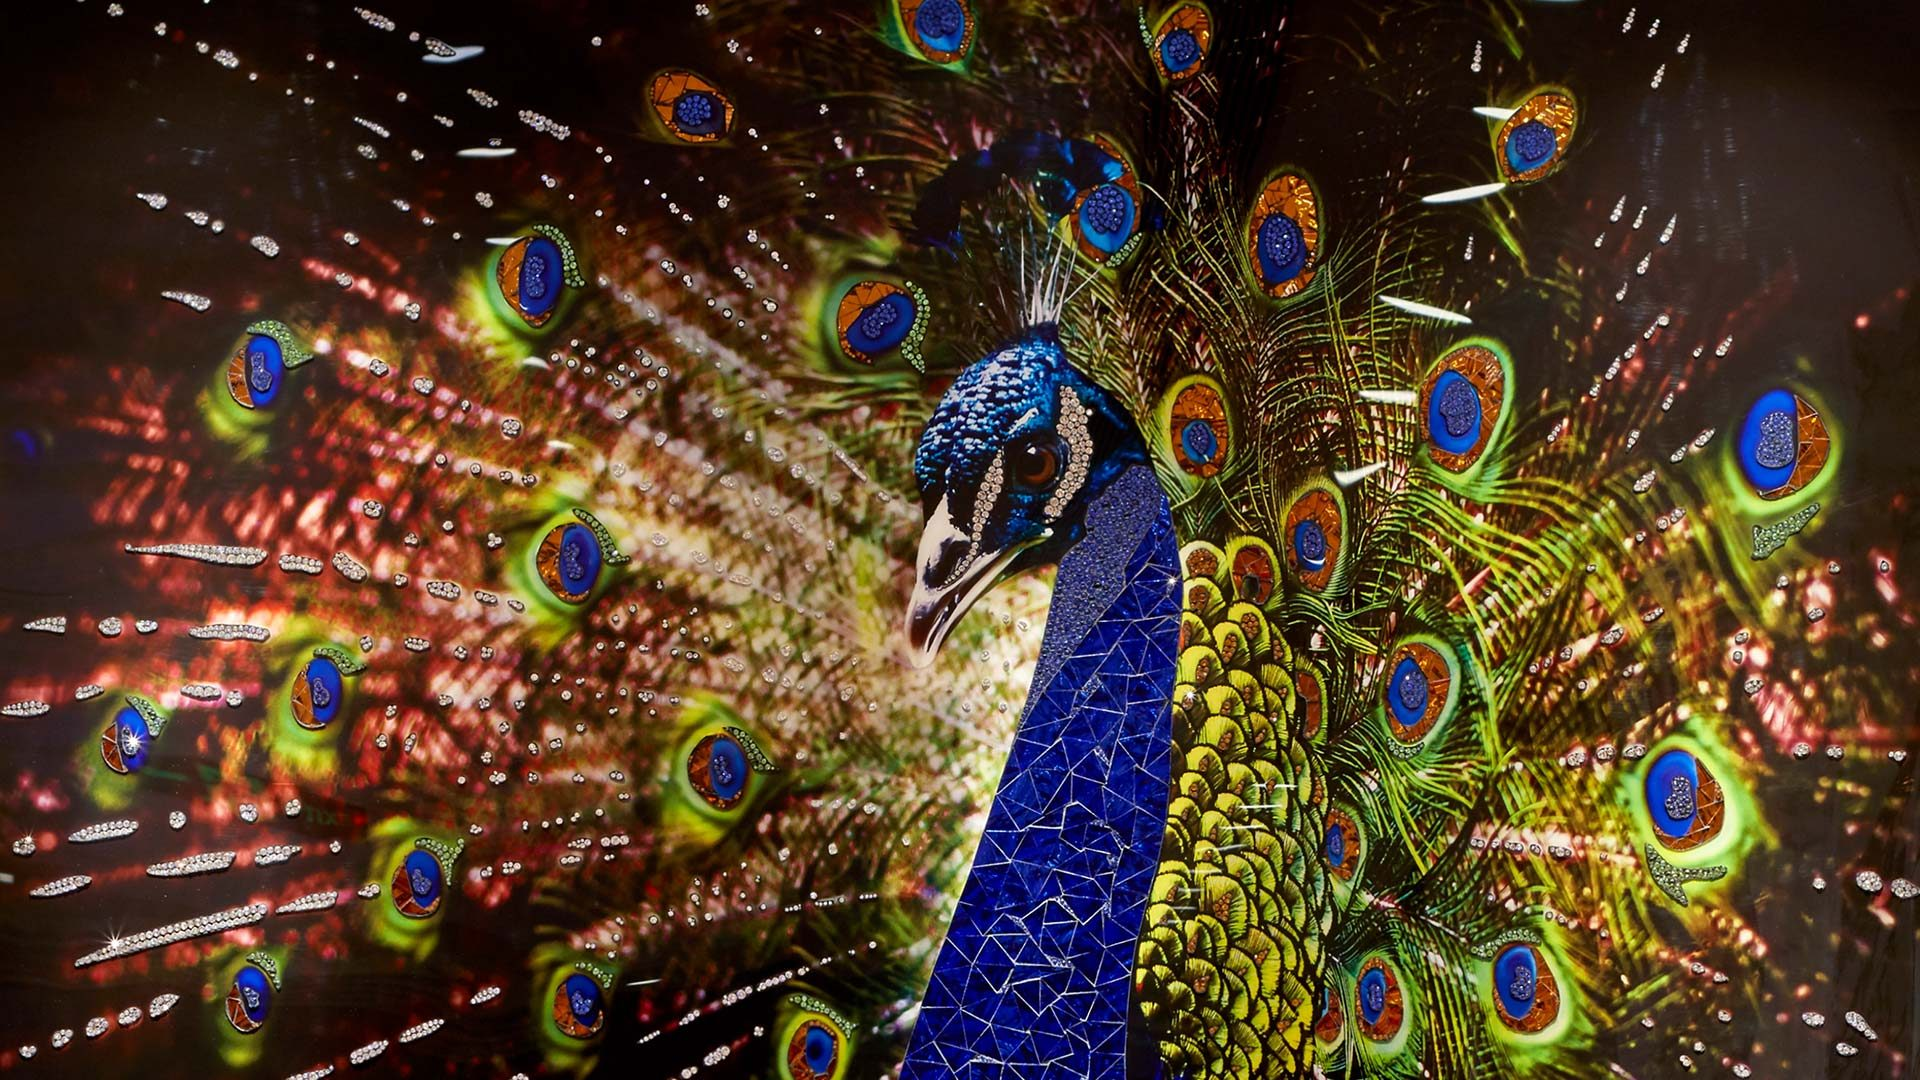 Swarovski Peacock Visionnaire | Webstie Development | Kingsland Linassi